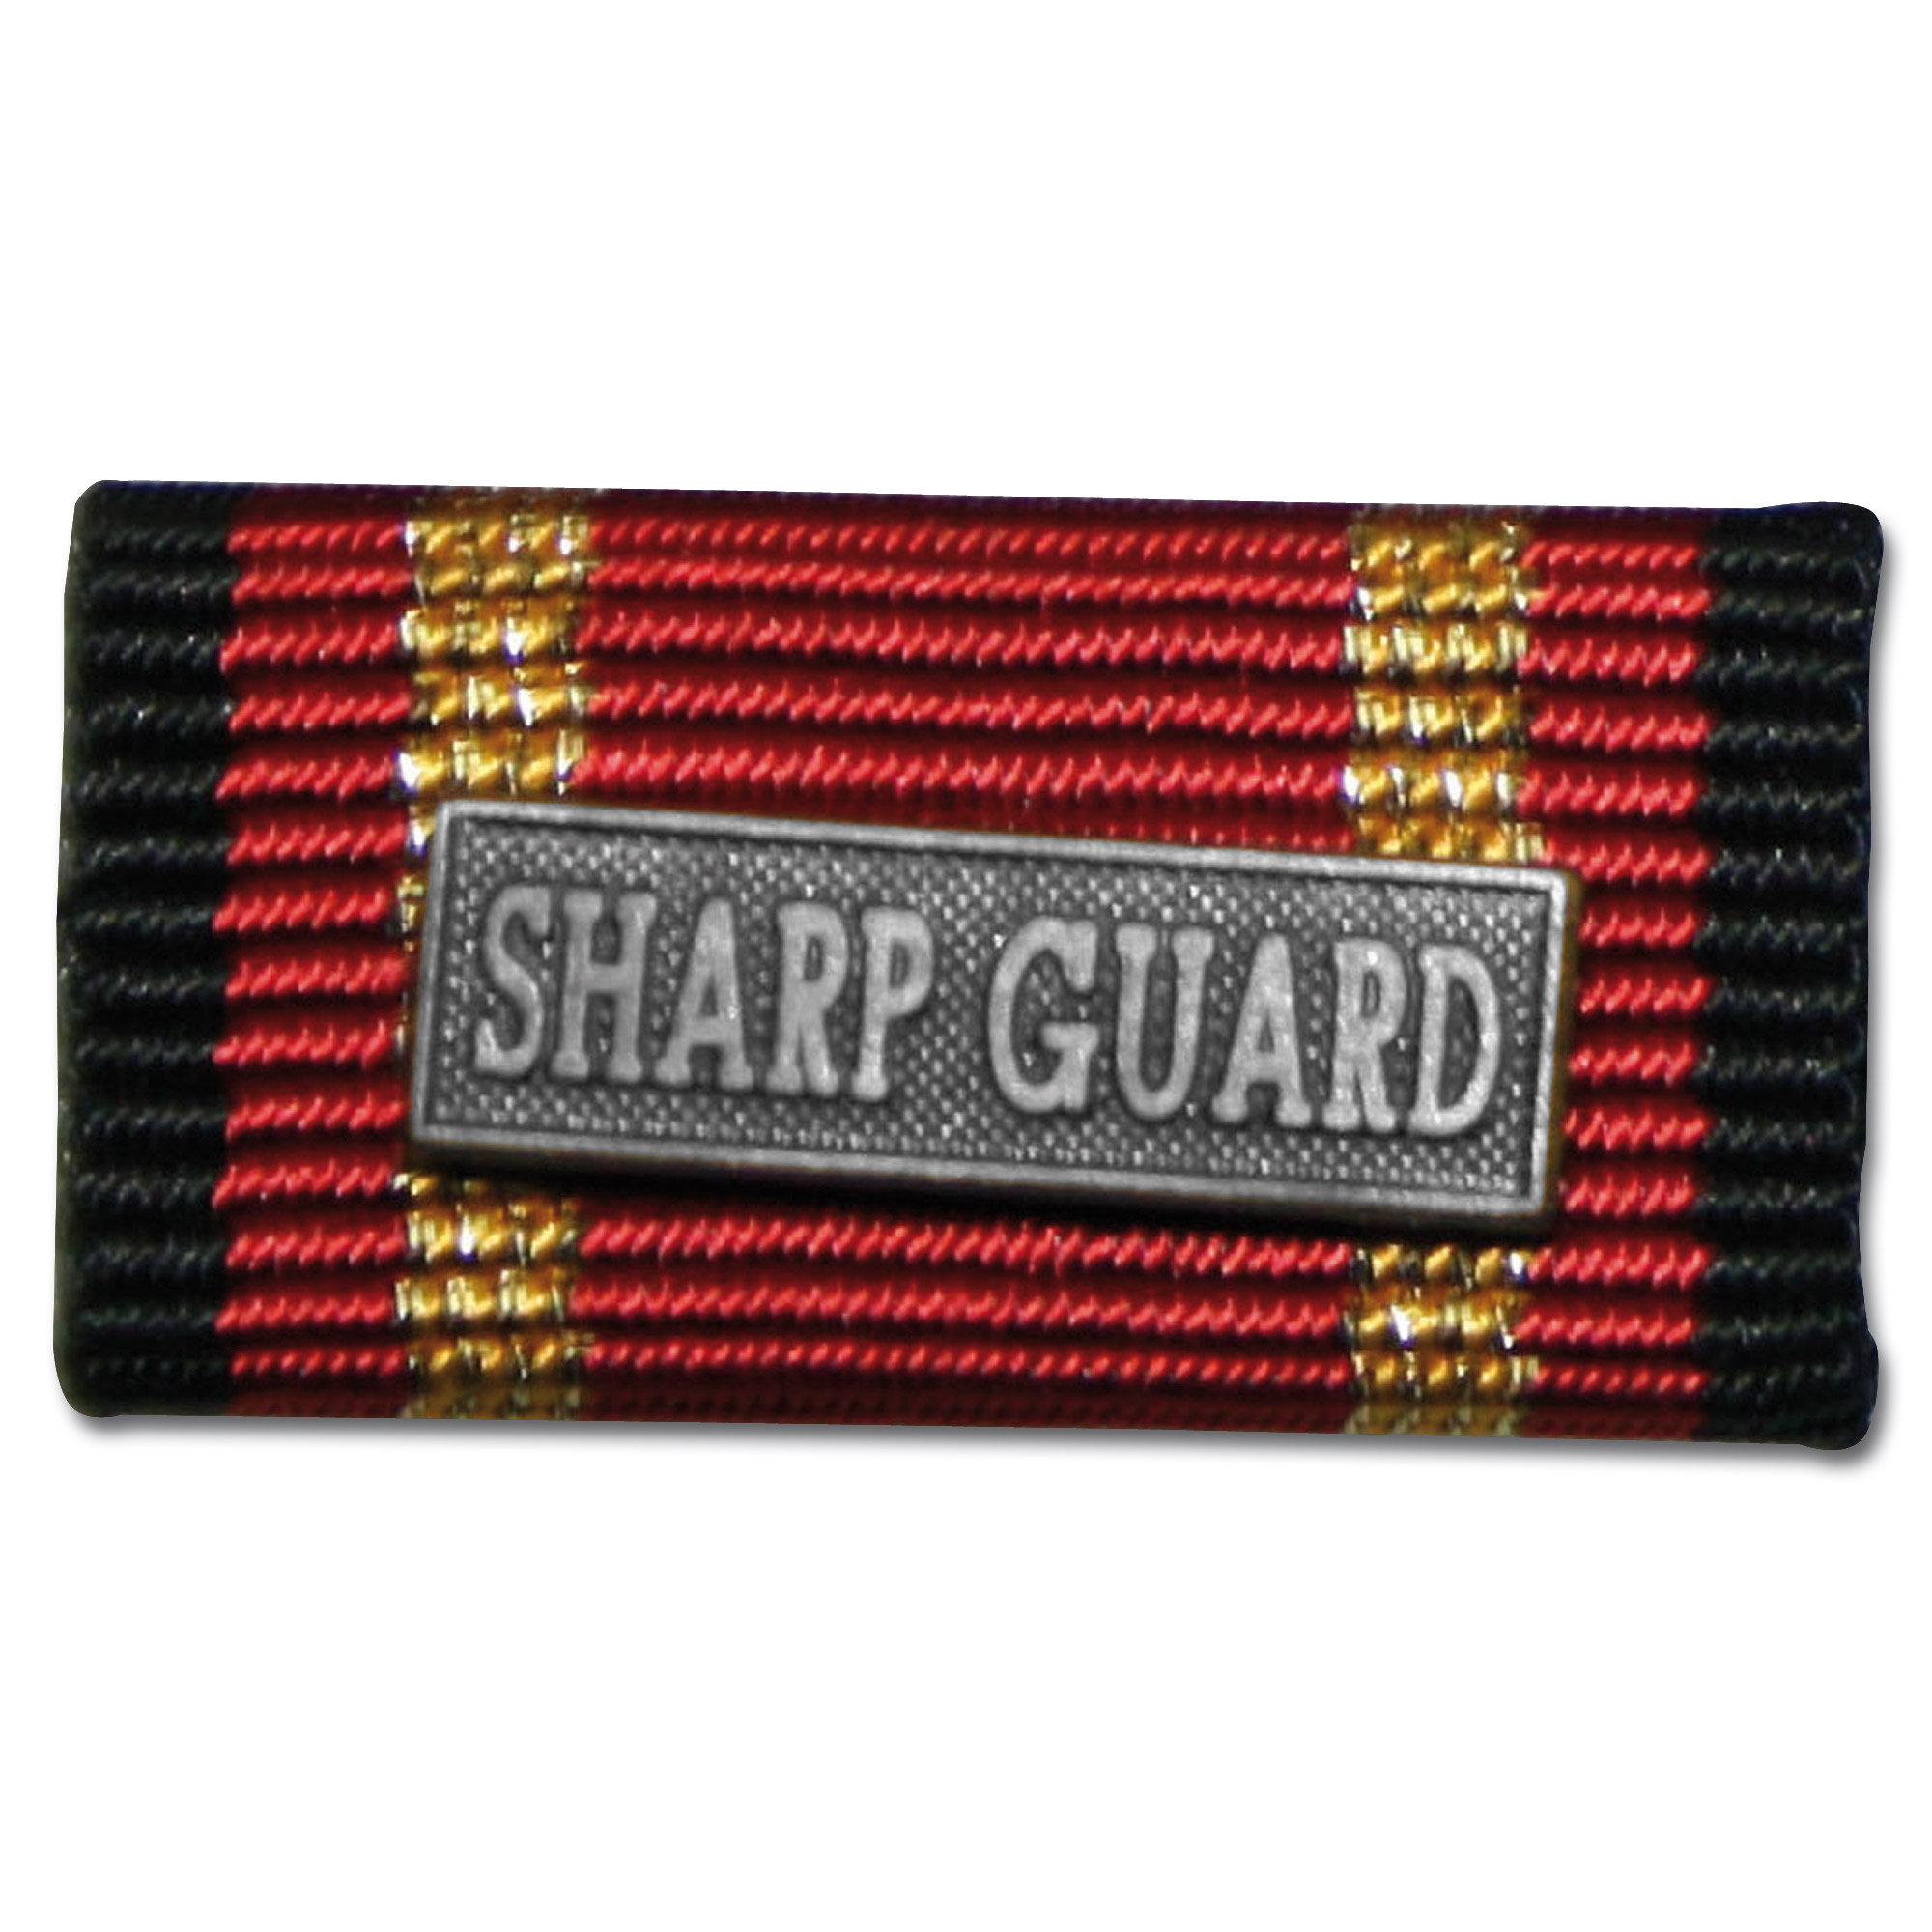 Ordensspange Auslandseinsatz SHARP GUARD silber